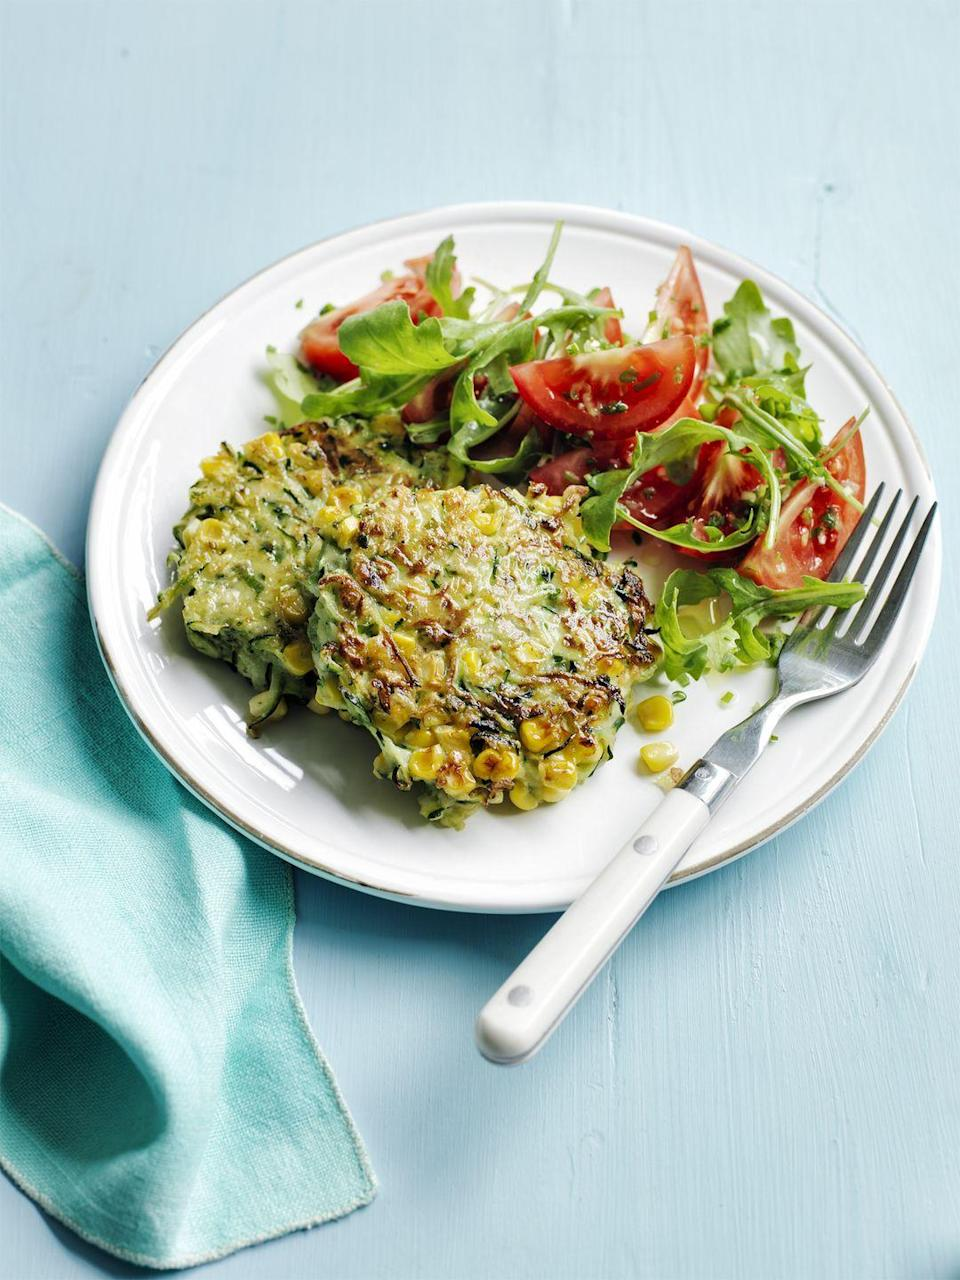 """<p>Zucchini pairs great with other vegetables, especially when combined with corn to make these bite-sized fritters.</p><p><strong><em><a href=""""https://www.womansday.com/food-recipes/food-drinks/recipes/a55356/corn-and-zucchini-fritters-recipe/"""" rel=""""nofollow noopener"""" target=""""_blank"""" data-ylk=""""slk:Get the recipe for Corn and Zucchini Fritters."""" class=""""link rapid-noclick-resp"""">Get the recipe for Corn and Zucchini Fritters.</a></em></strong></p>"""